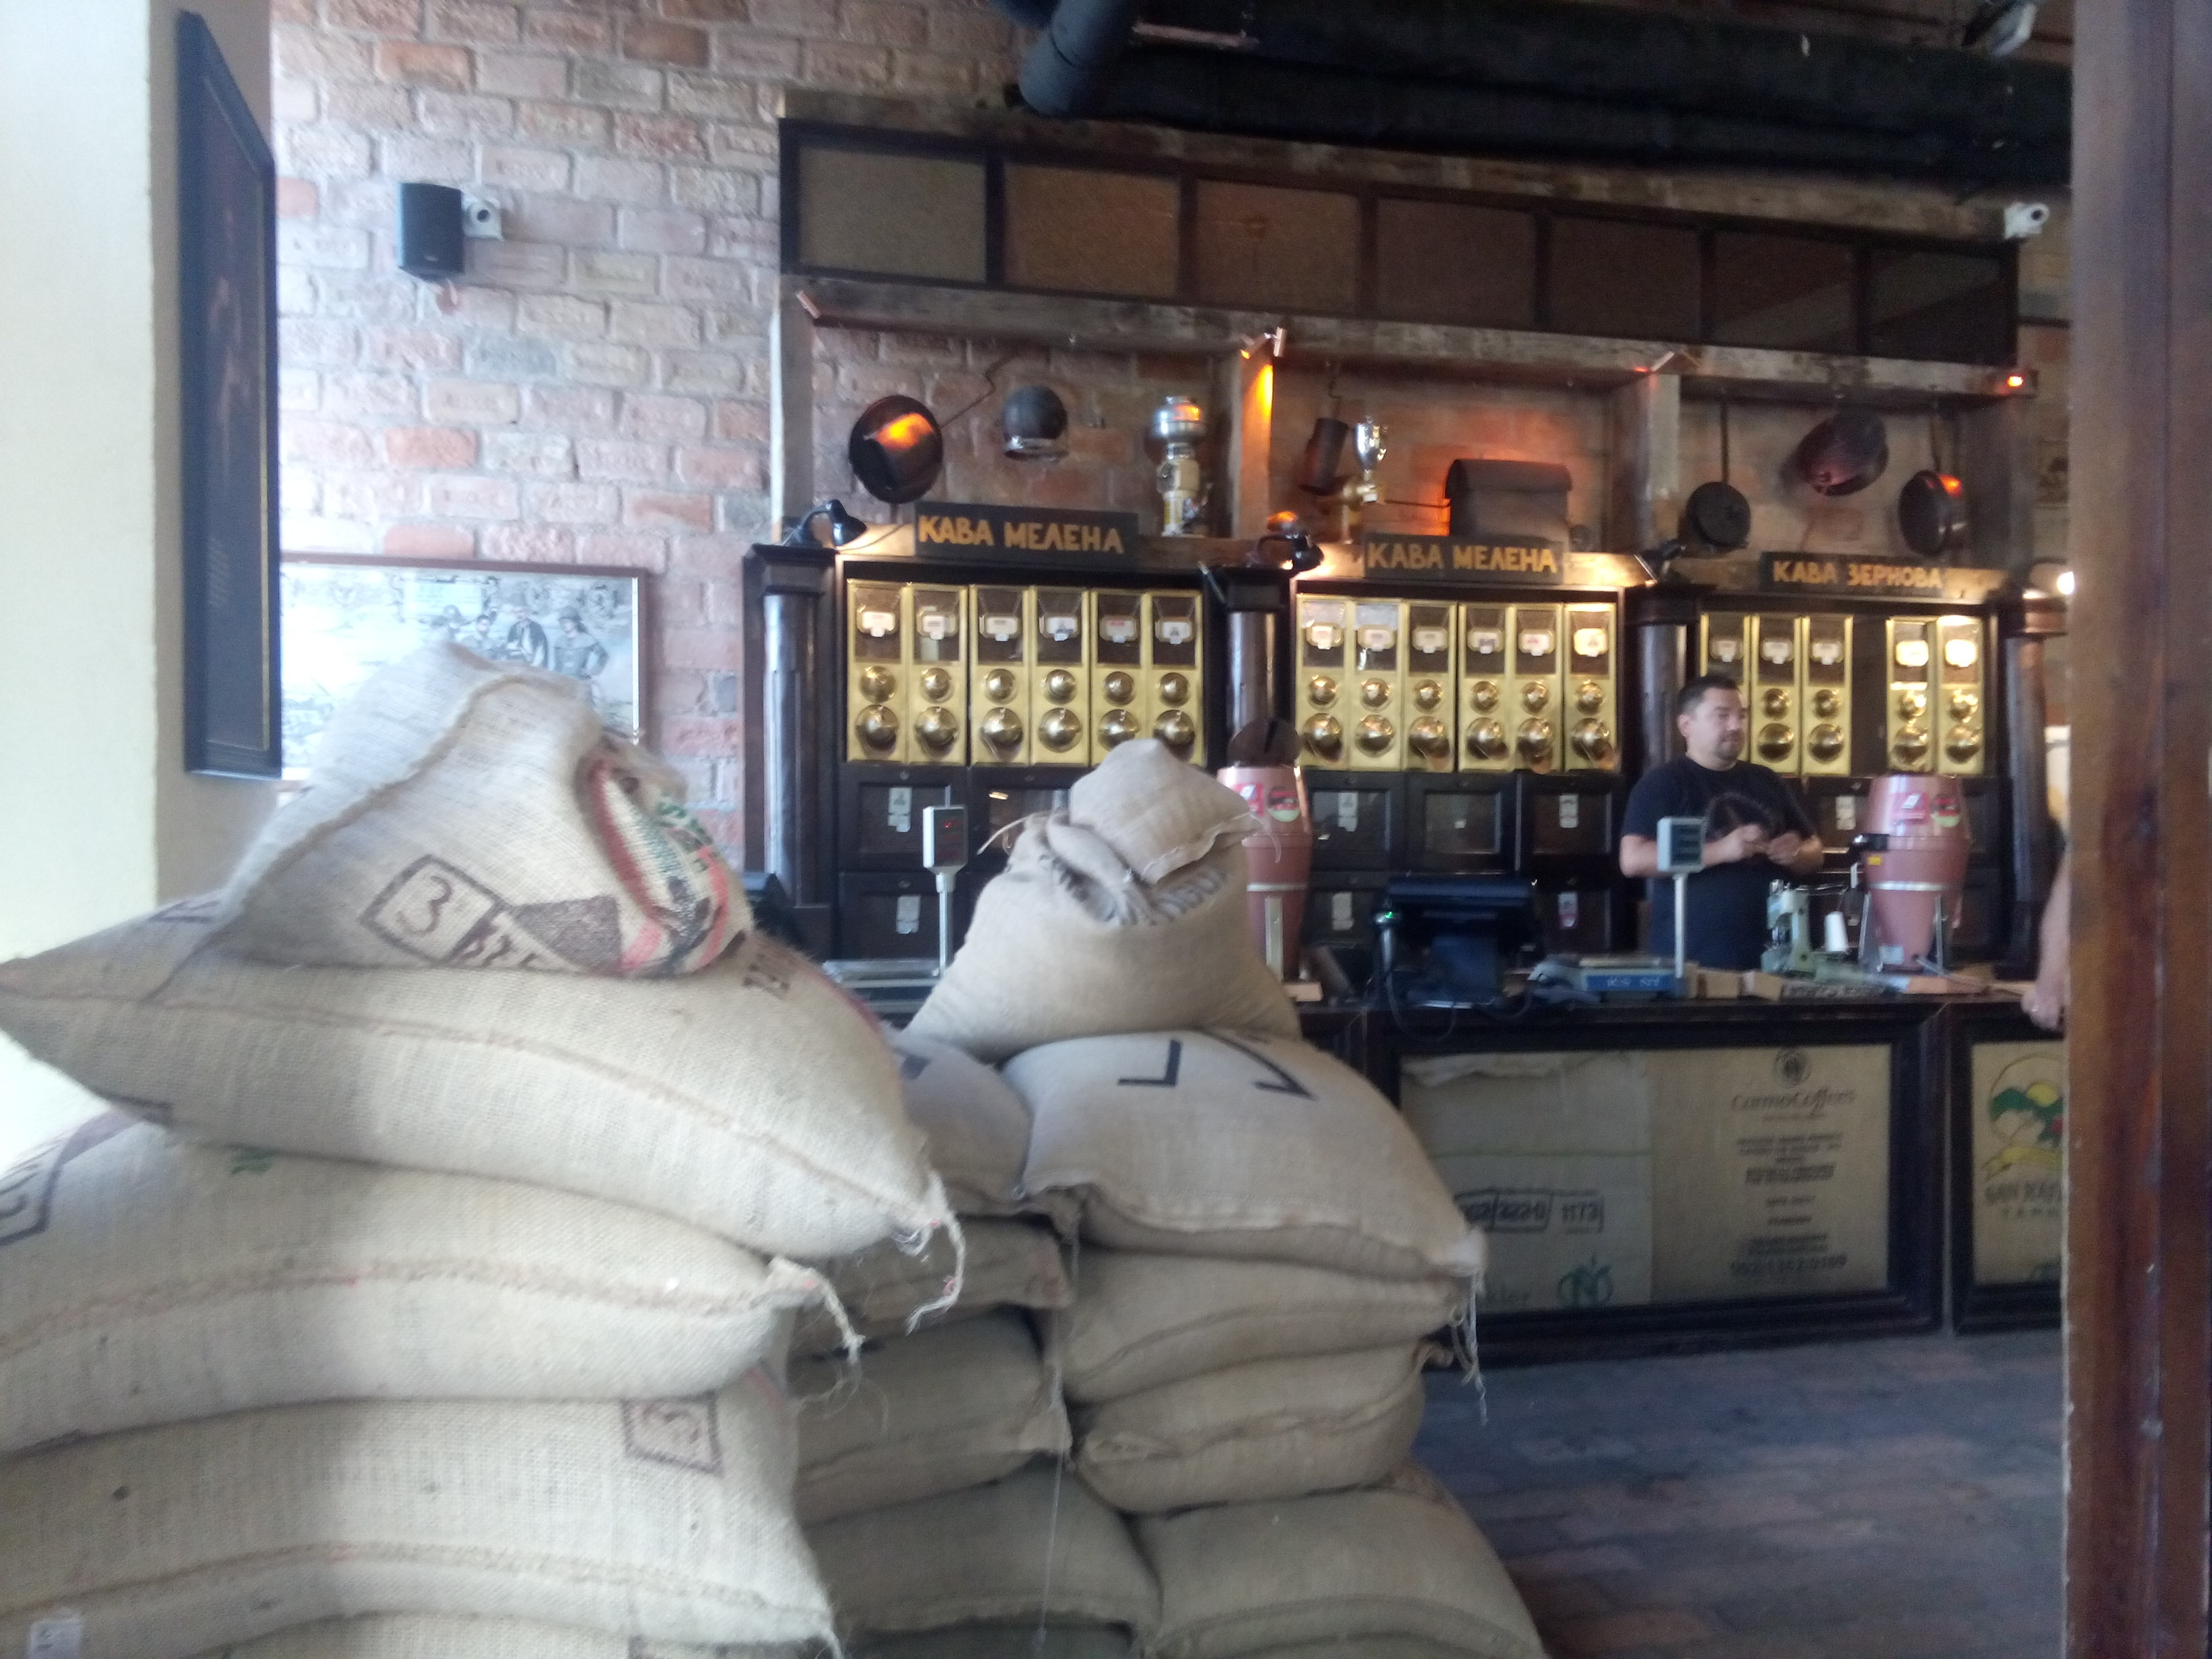 Sacks of coffee beans in the foreground and coffee grinding machines against a brick wall in the background